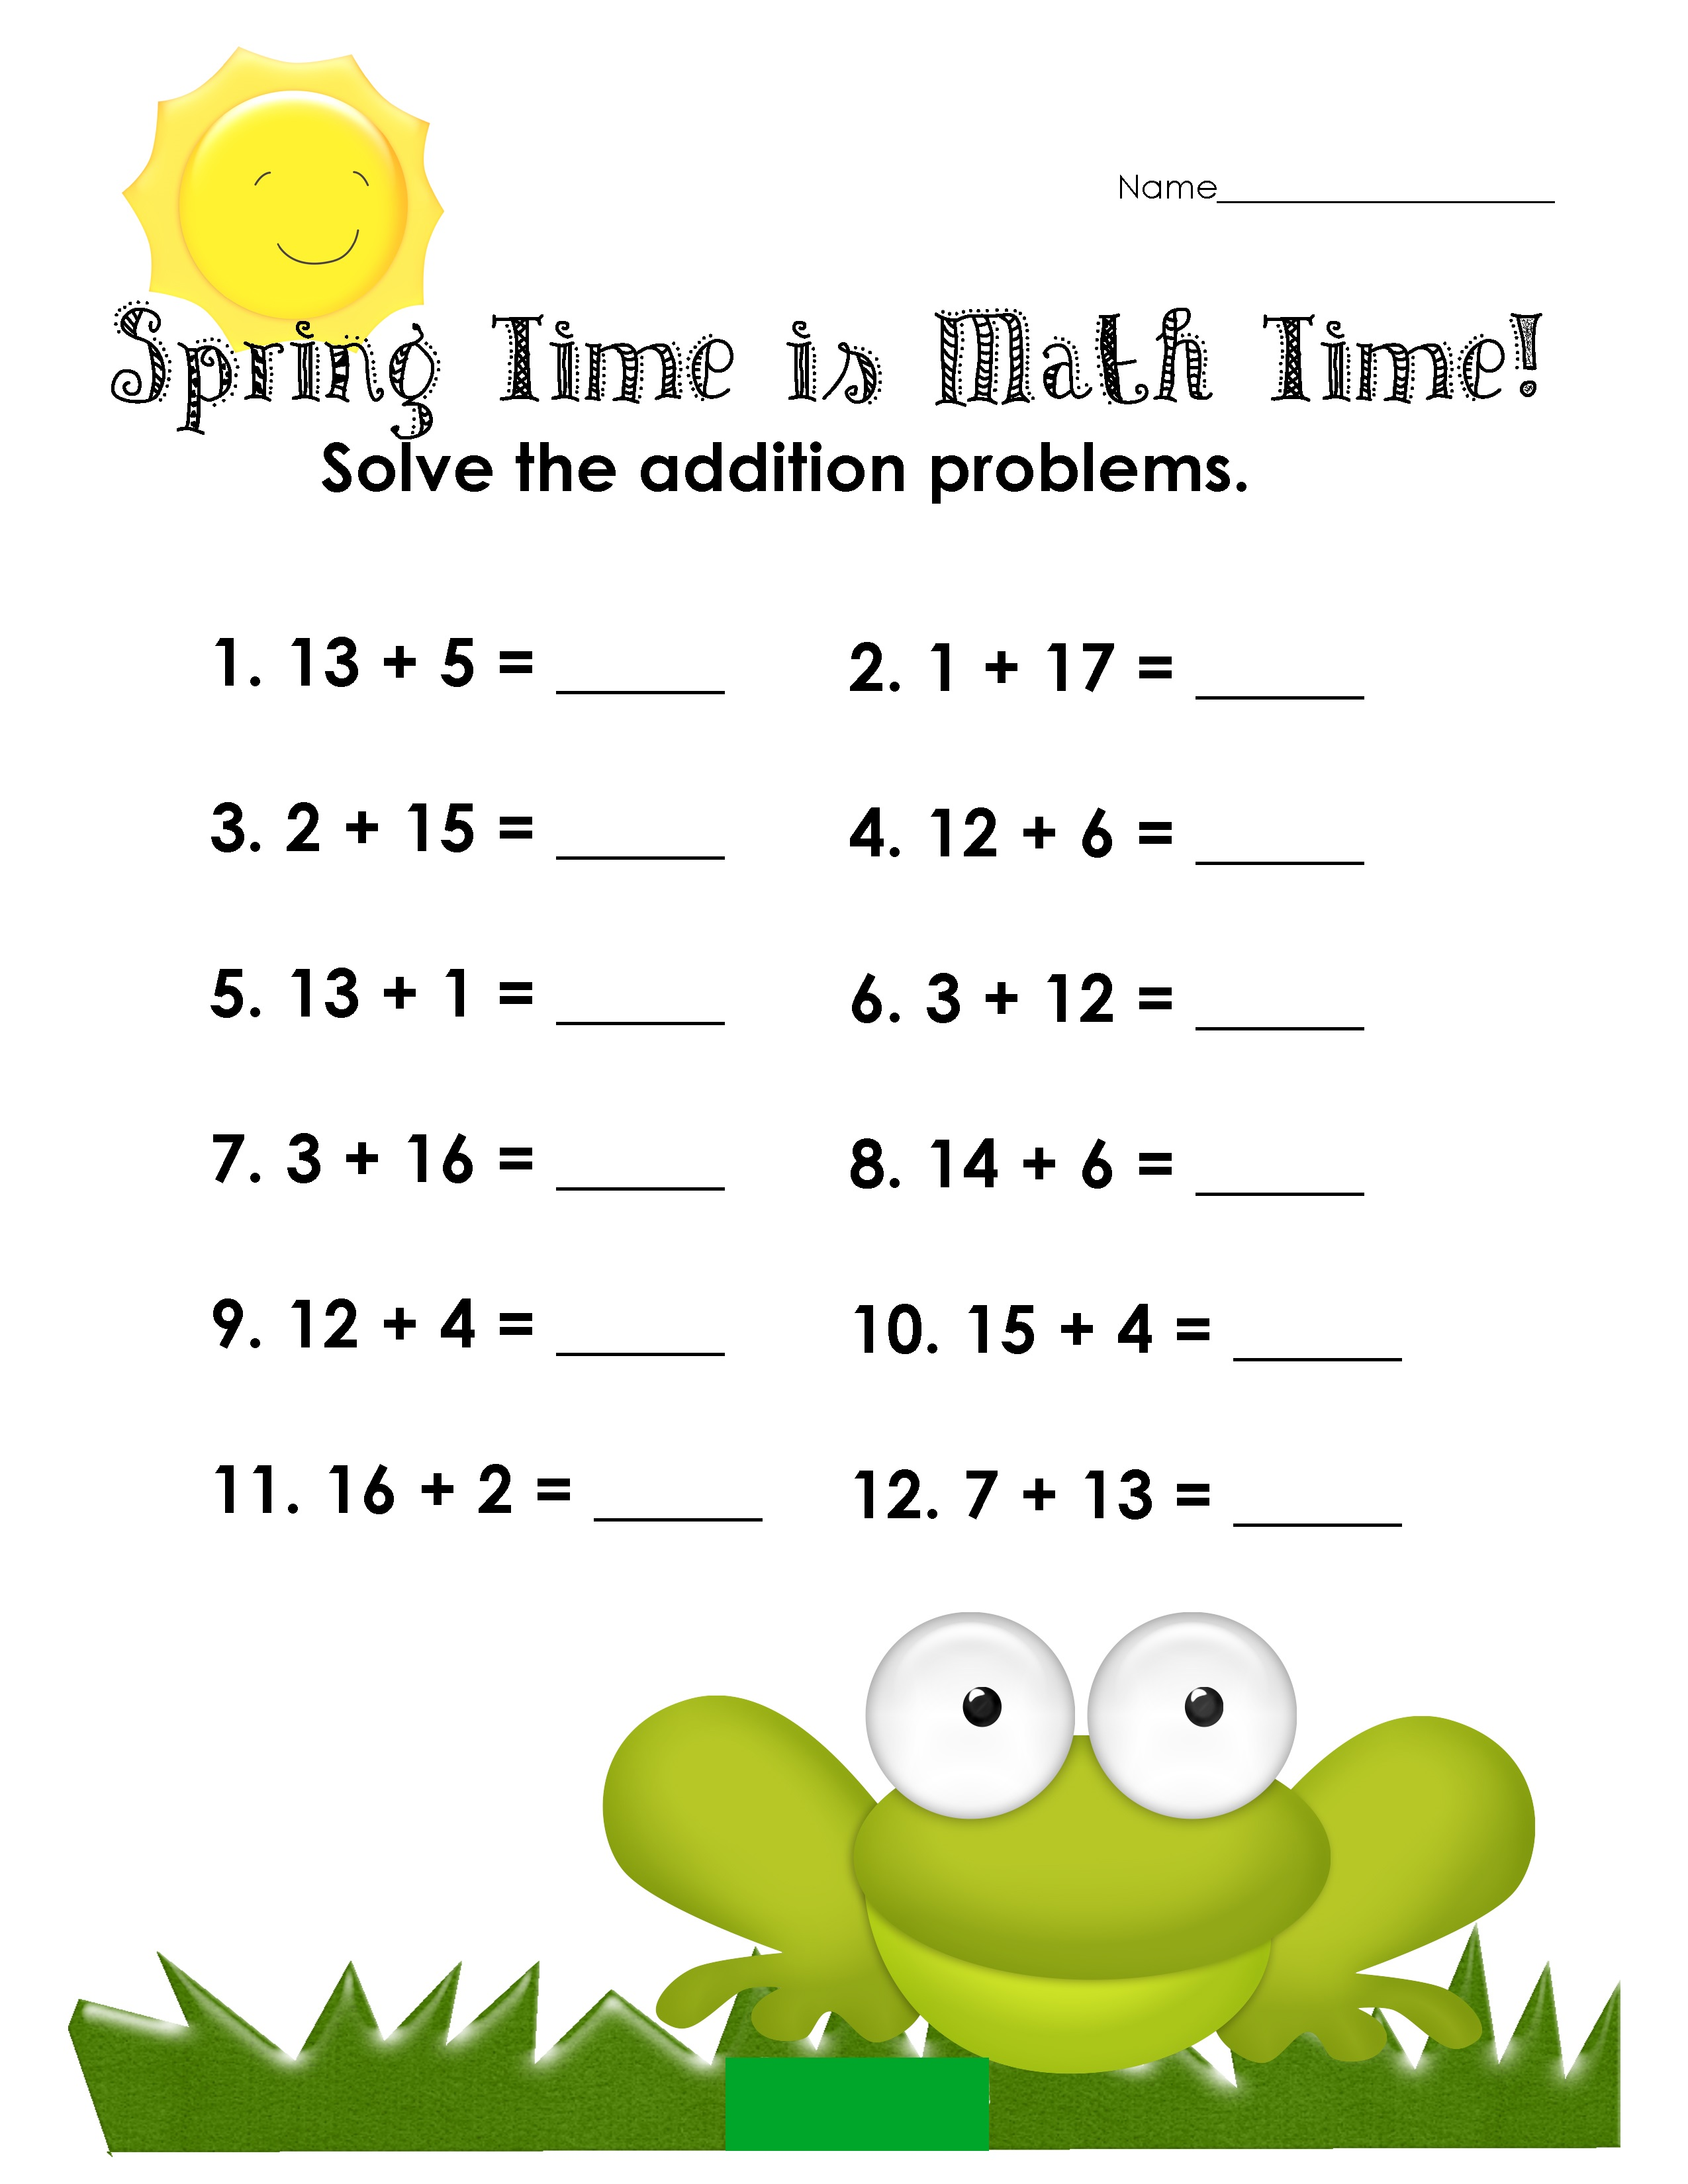 fun sheets for math for kids